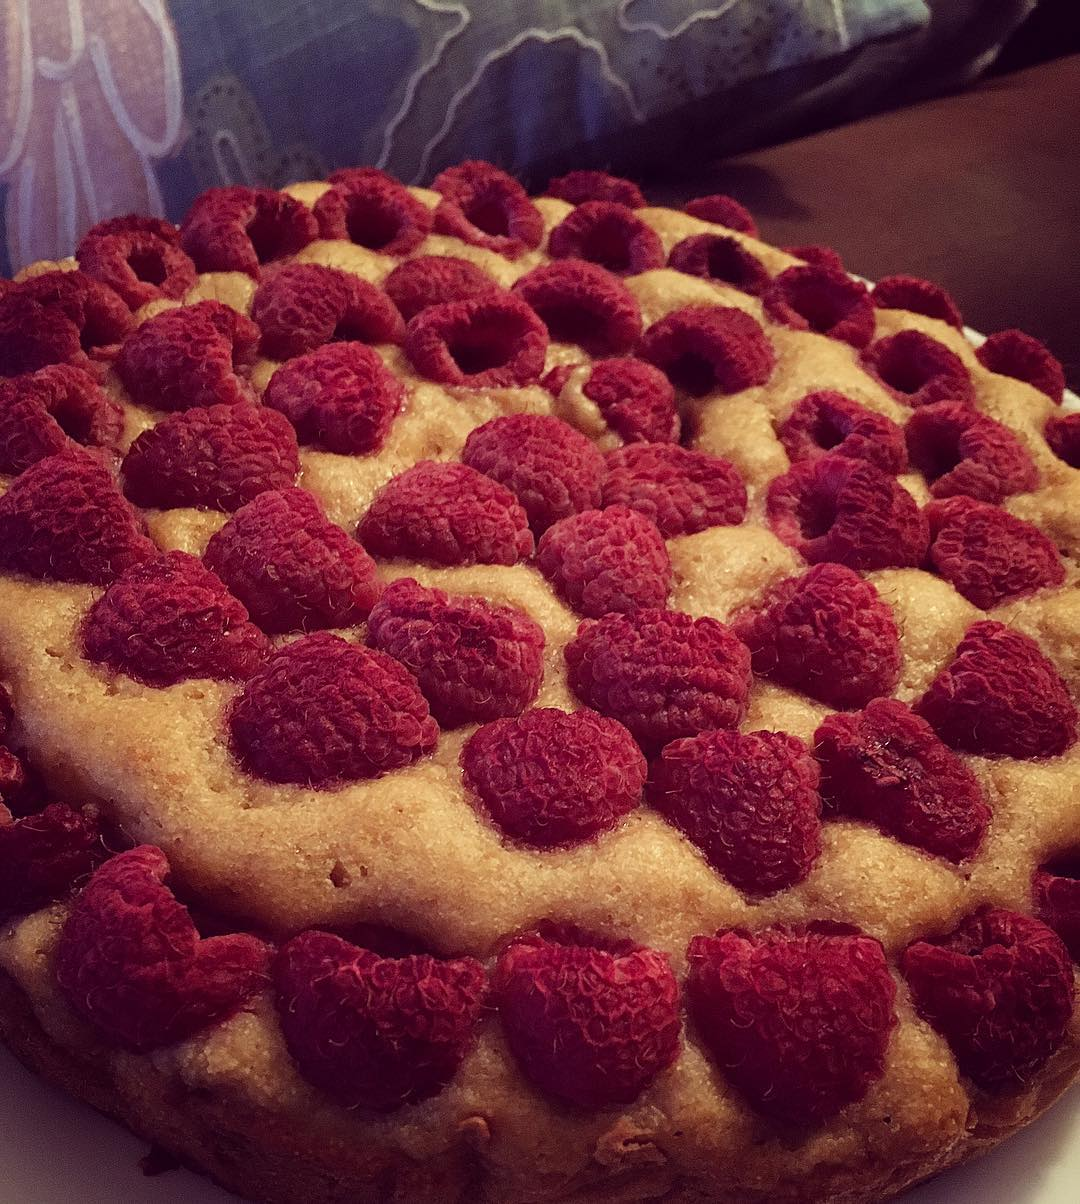 simple raspberry lemon cake by @a.bergbyanyothername